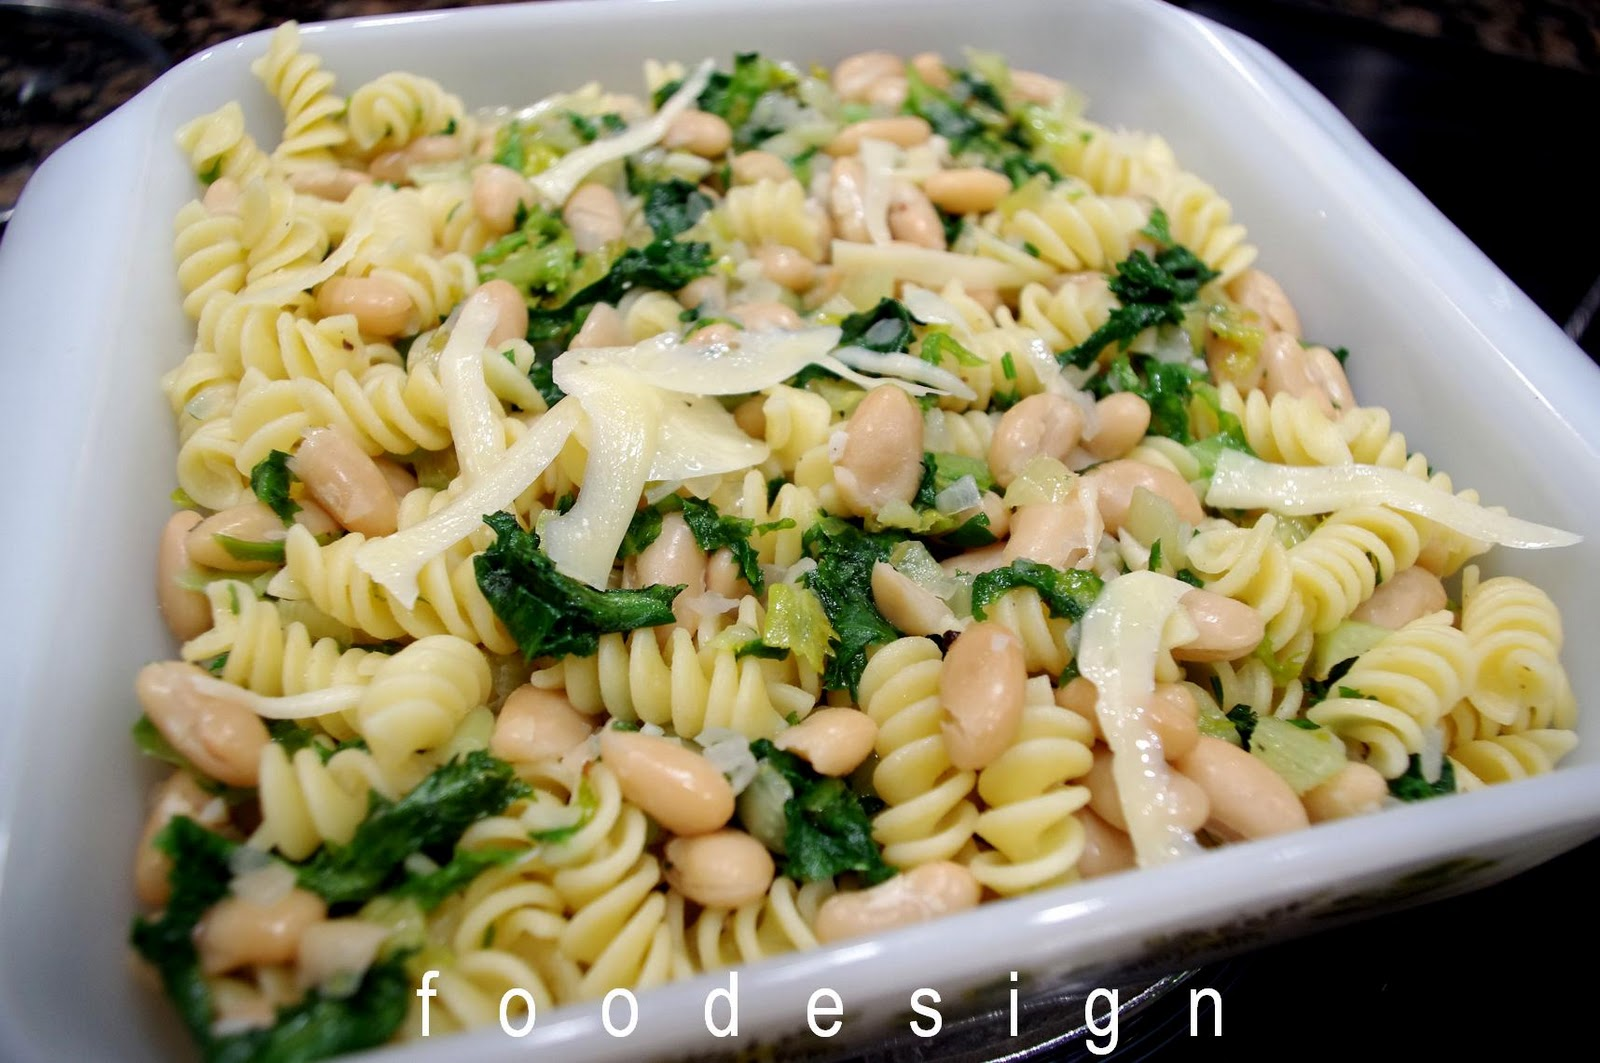 Foodesign Pasta With Beans And Escarole